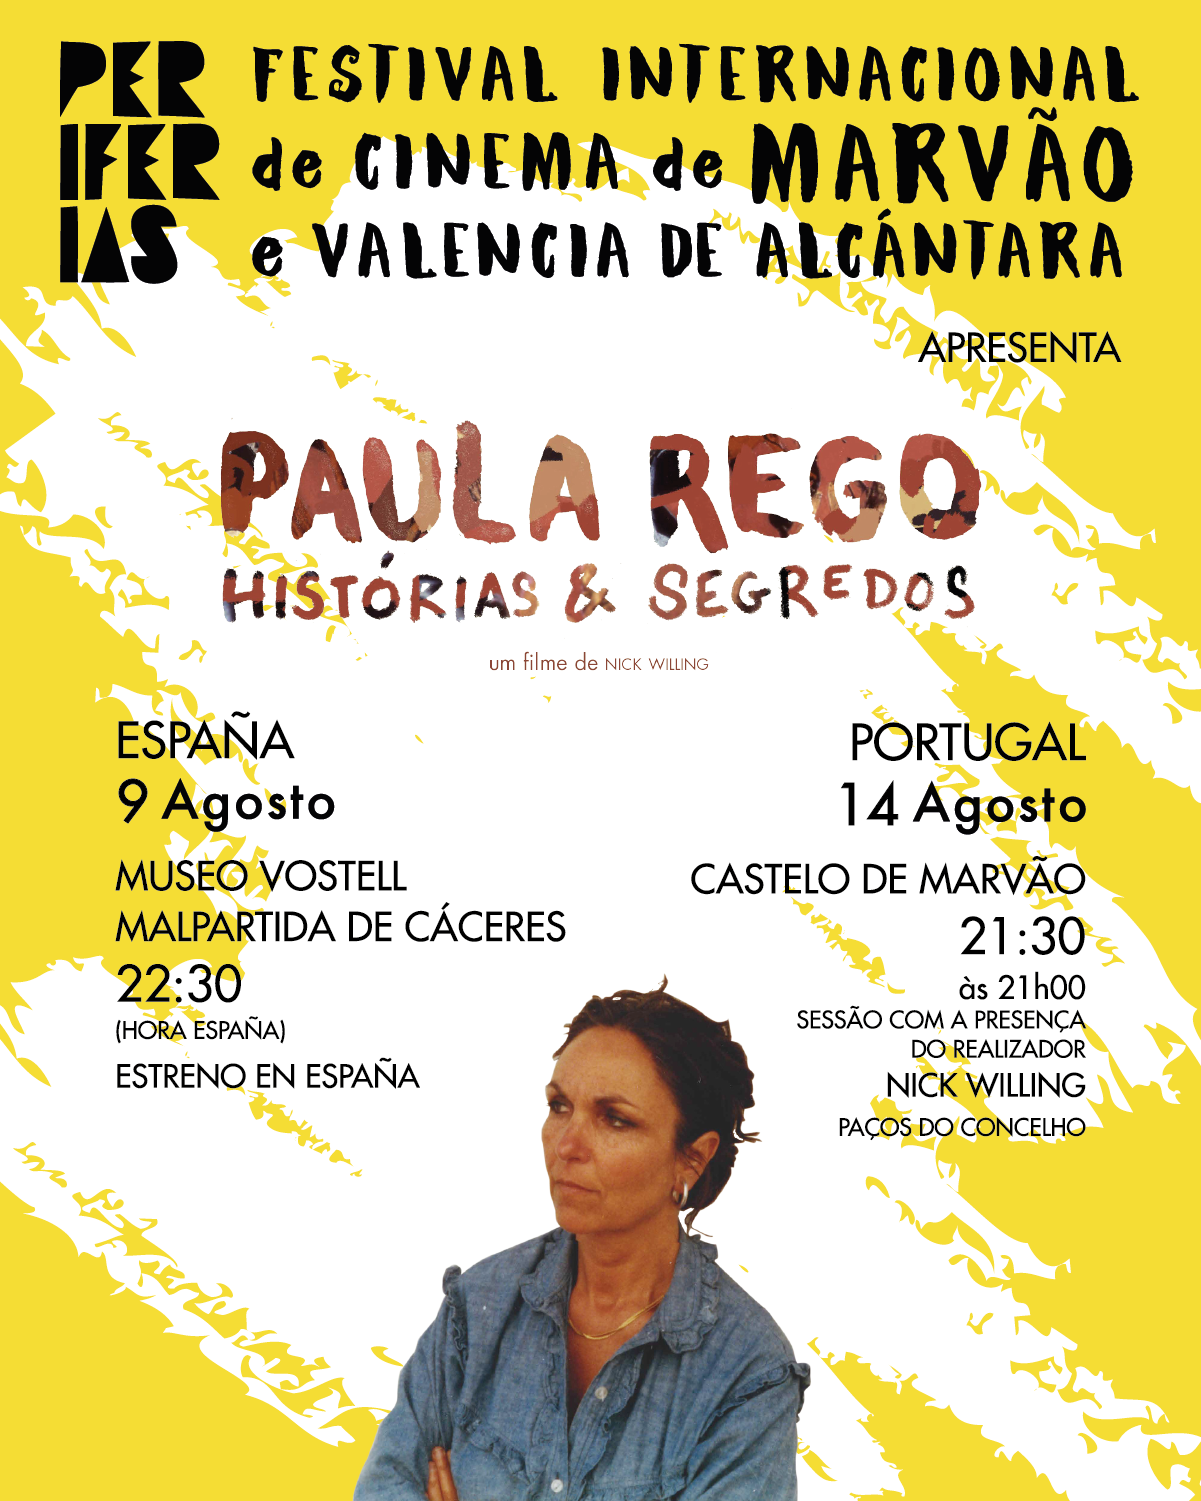 Documental PAULA REGO Histórias e Segredos